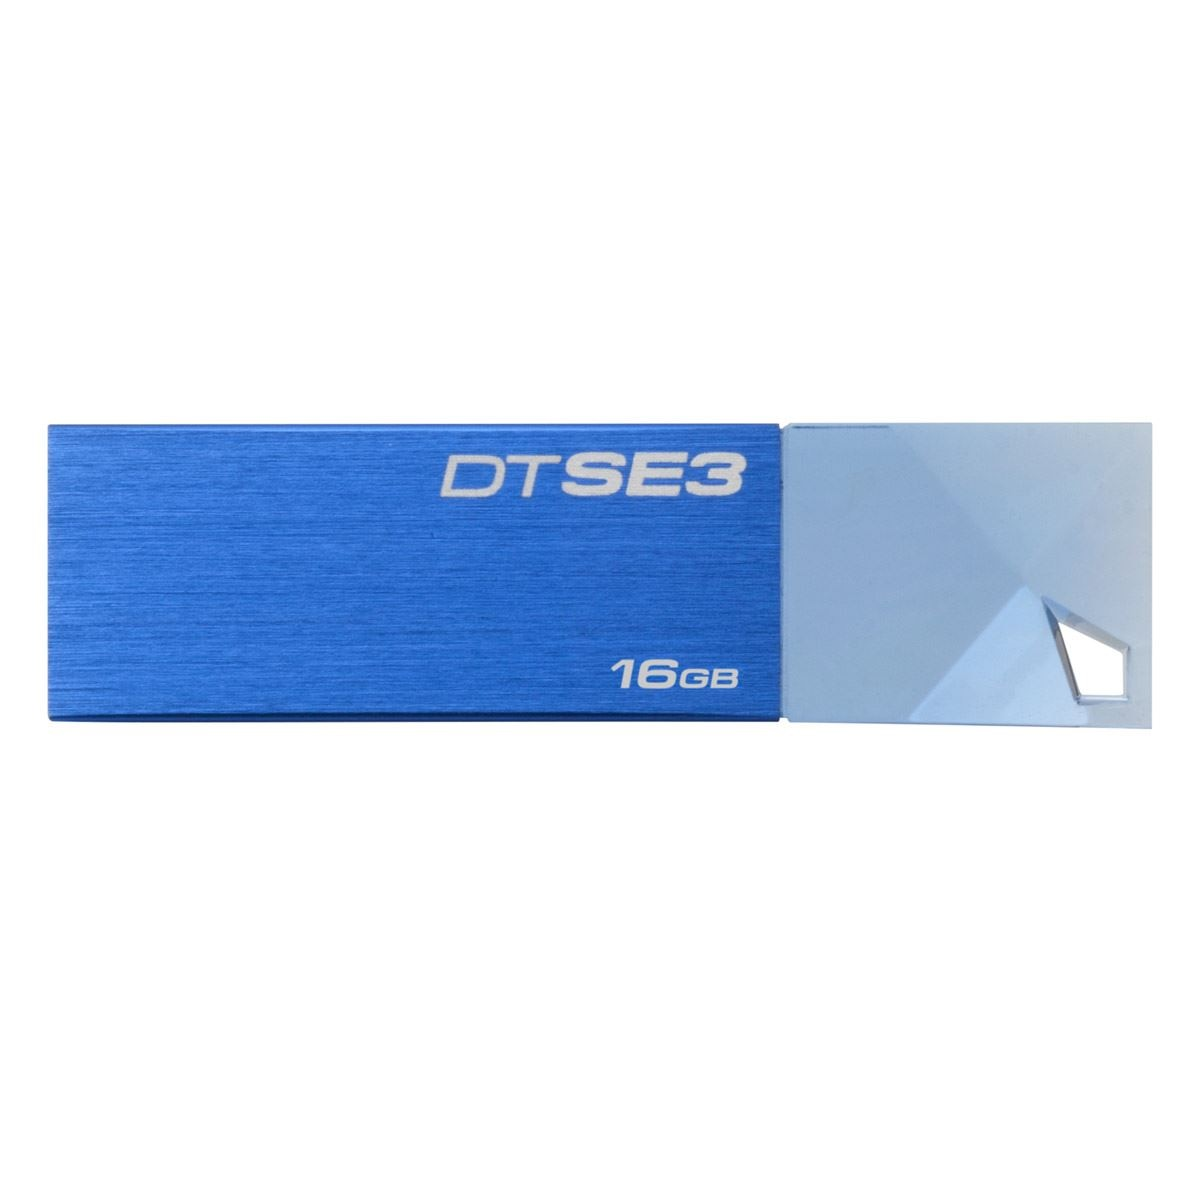 Kingston Memoria USB 2.0 16GB DTSE3 Azul